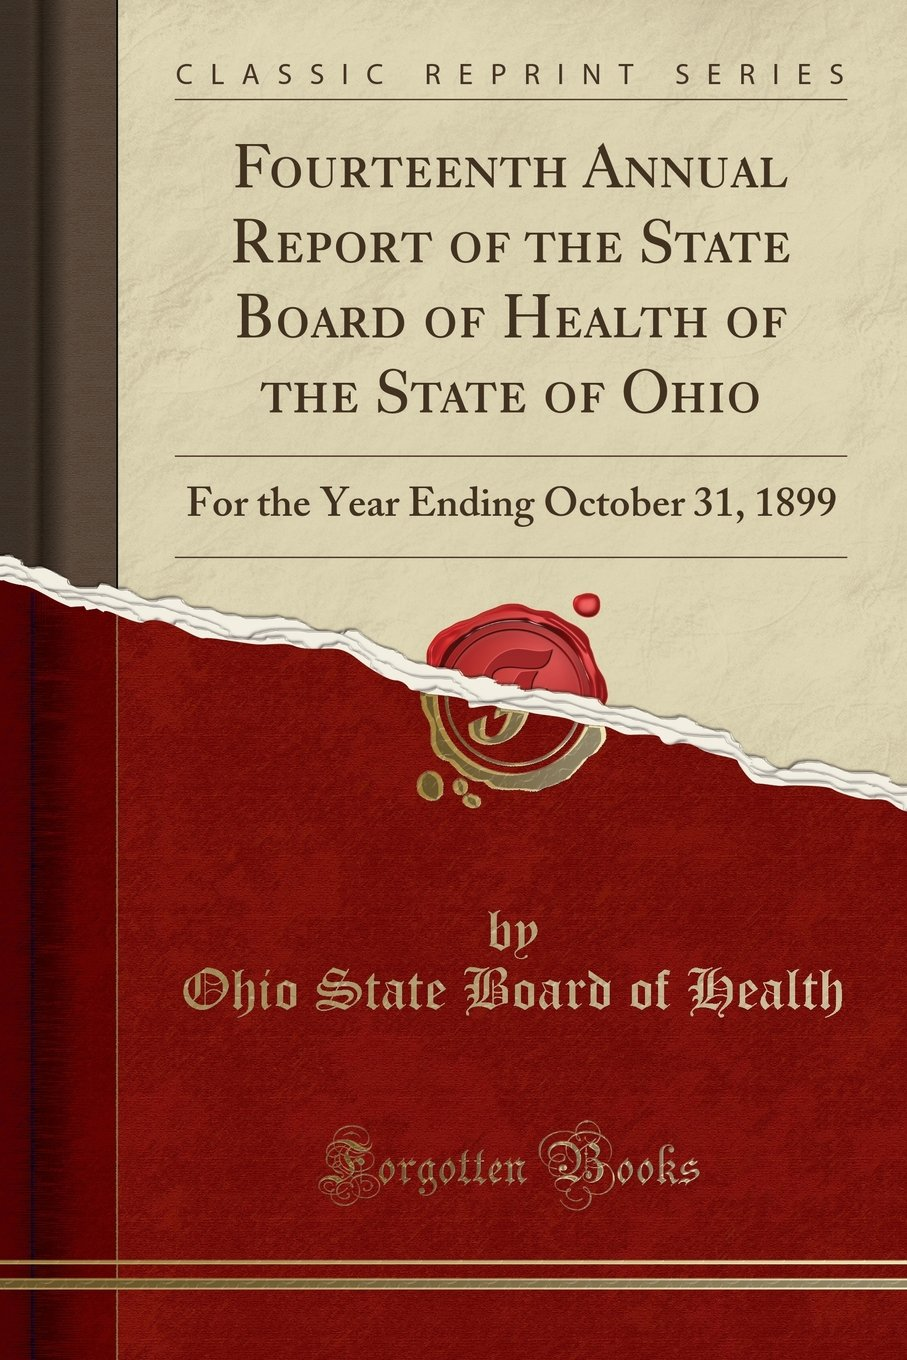 Fourteenth Annual Report of the State Board of Health of the State of Ohio: For the Year Ending October 31, 1899 (Classic Reprint) pdf